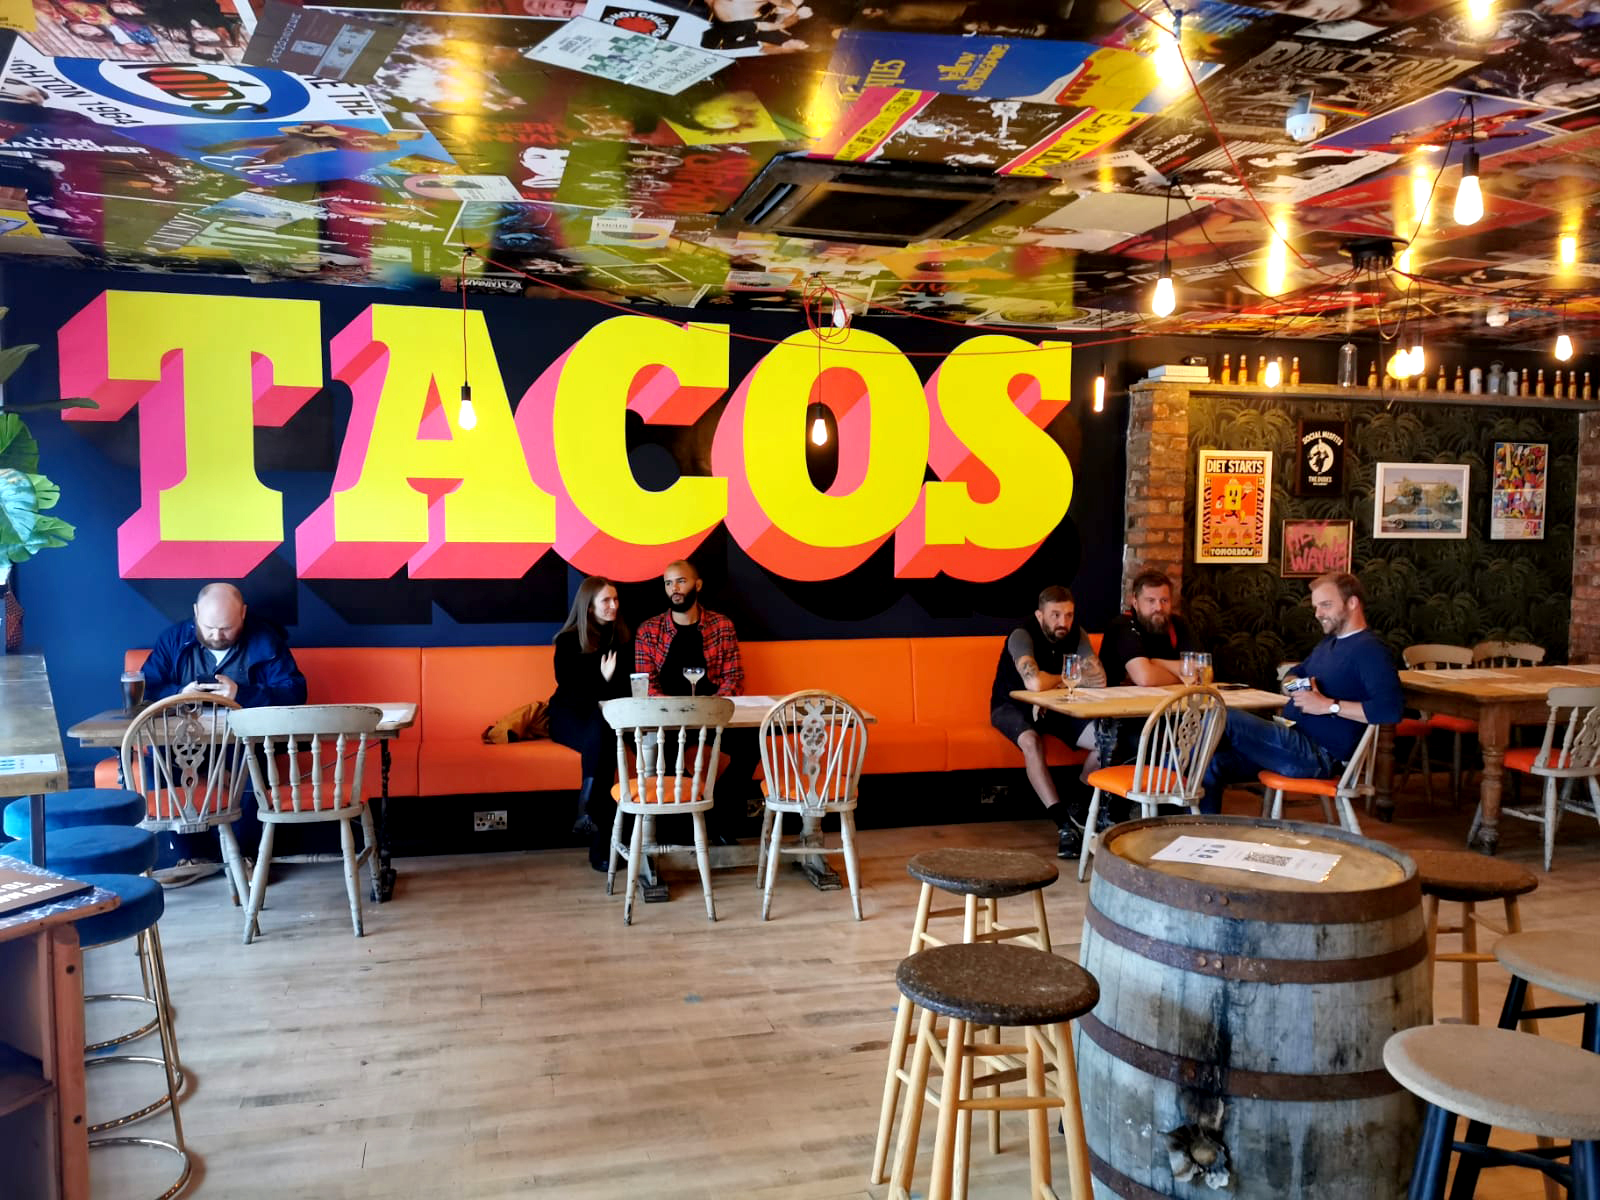 Take a walk on the Southside - VIVA checks out the new taco & tequila joint in town!